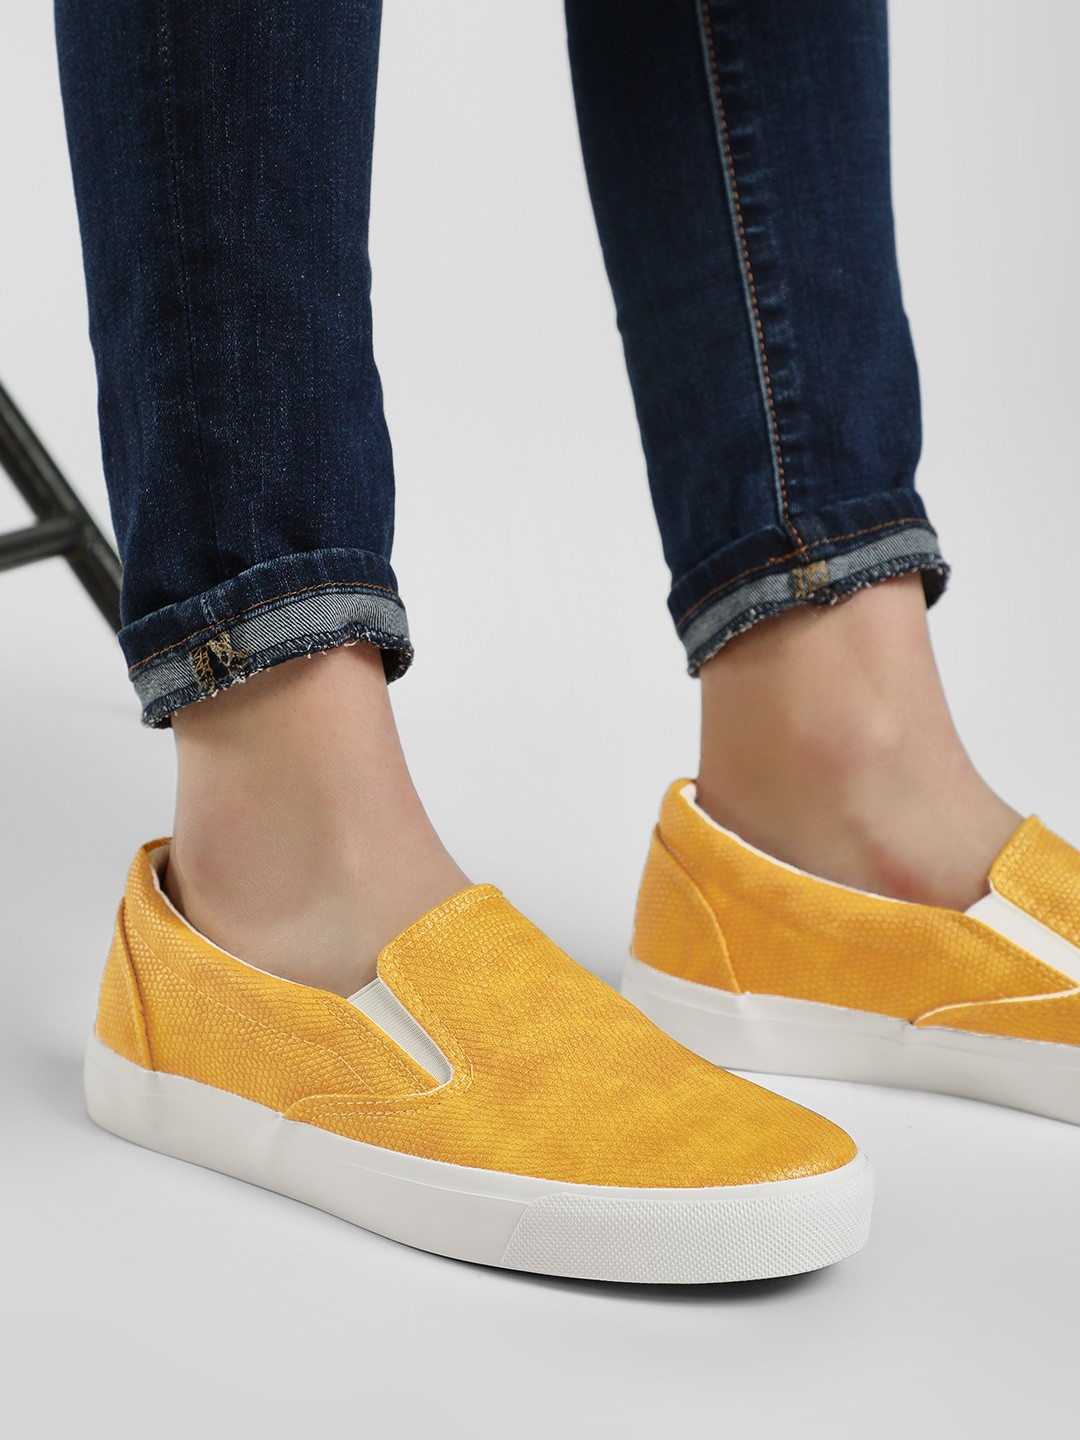 New Look Yellow Textured Contrast Flat Sole Shoes 1